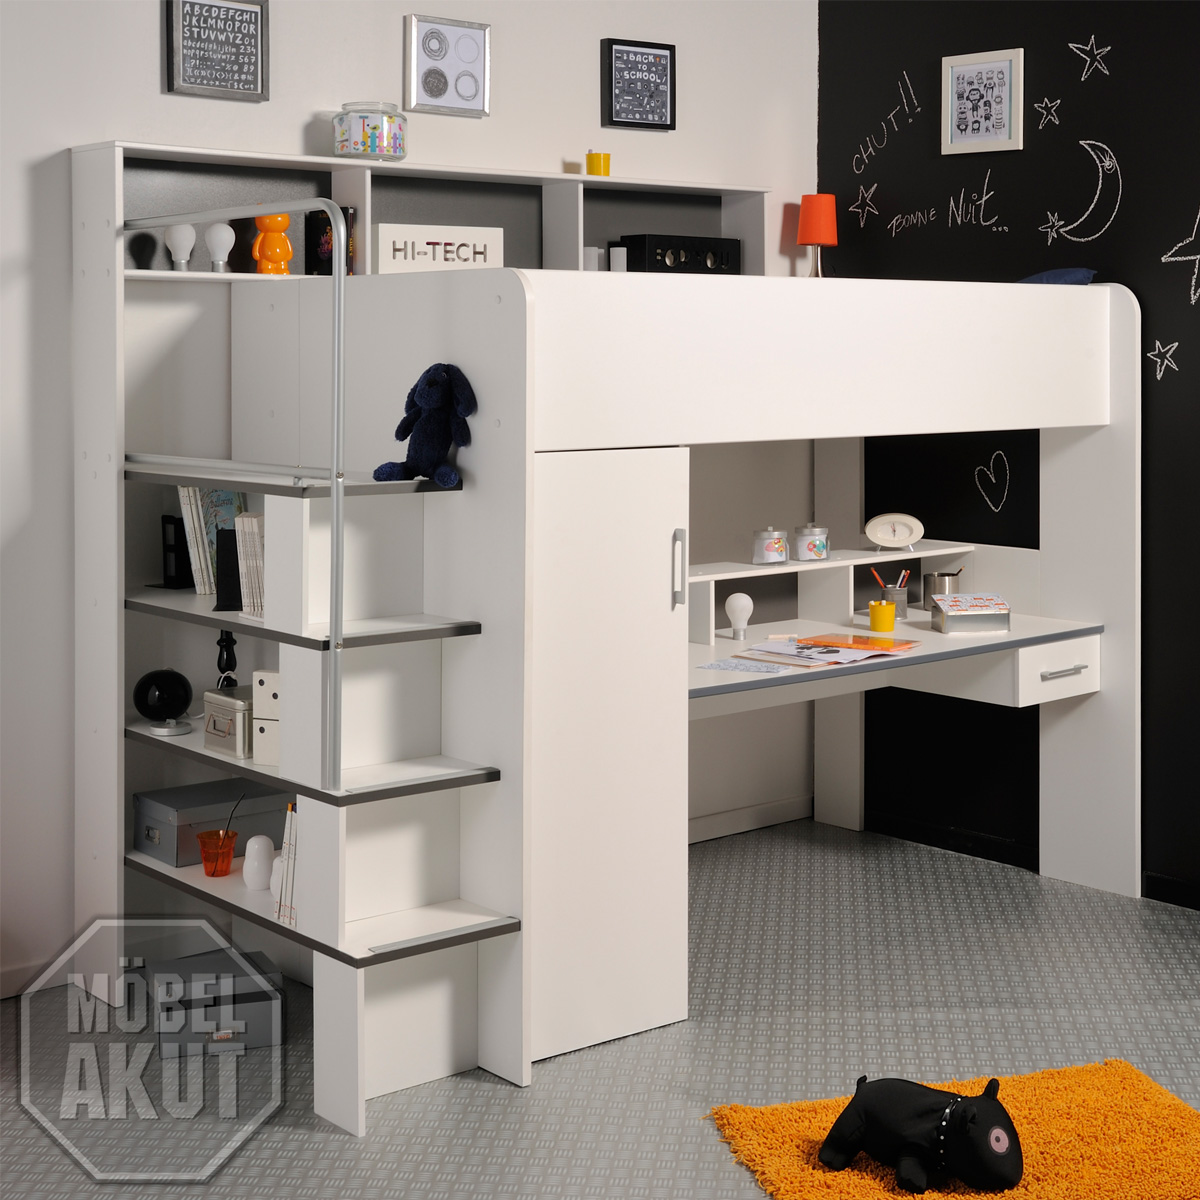 hochbett between etagenbett bett mit schreibtisch und schrank in wei grau ebay. Black Bedroom Furniture Sets. Home Design Ideas